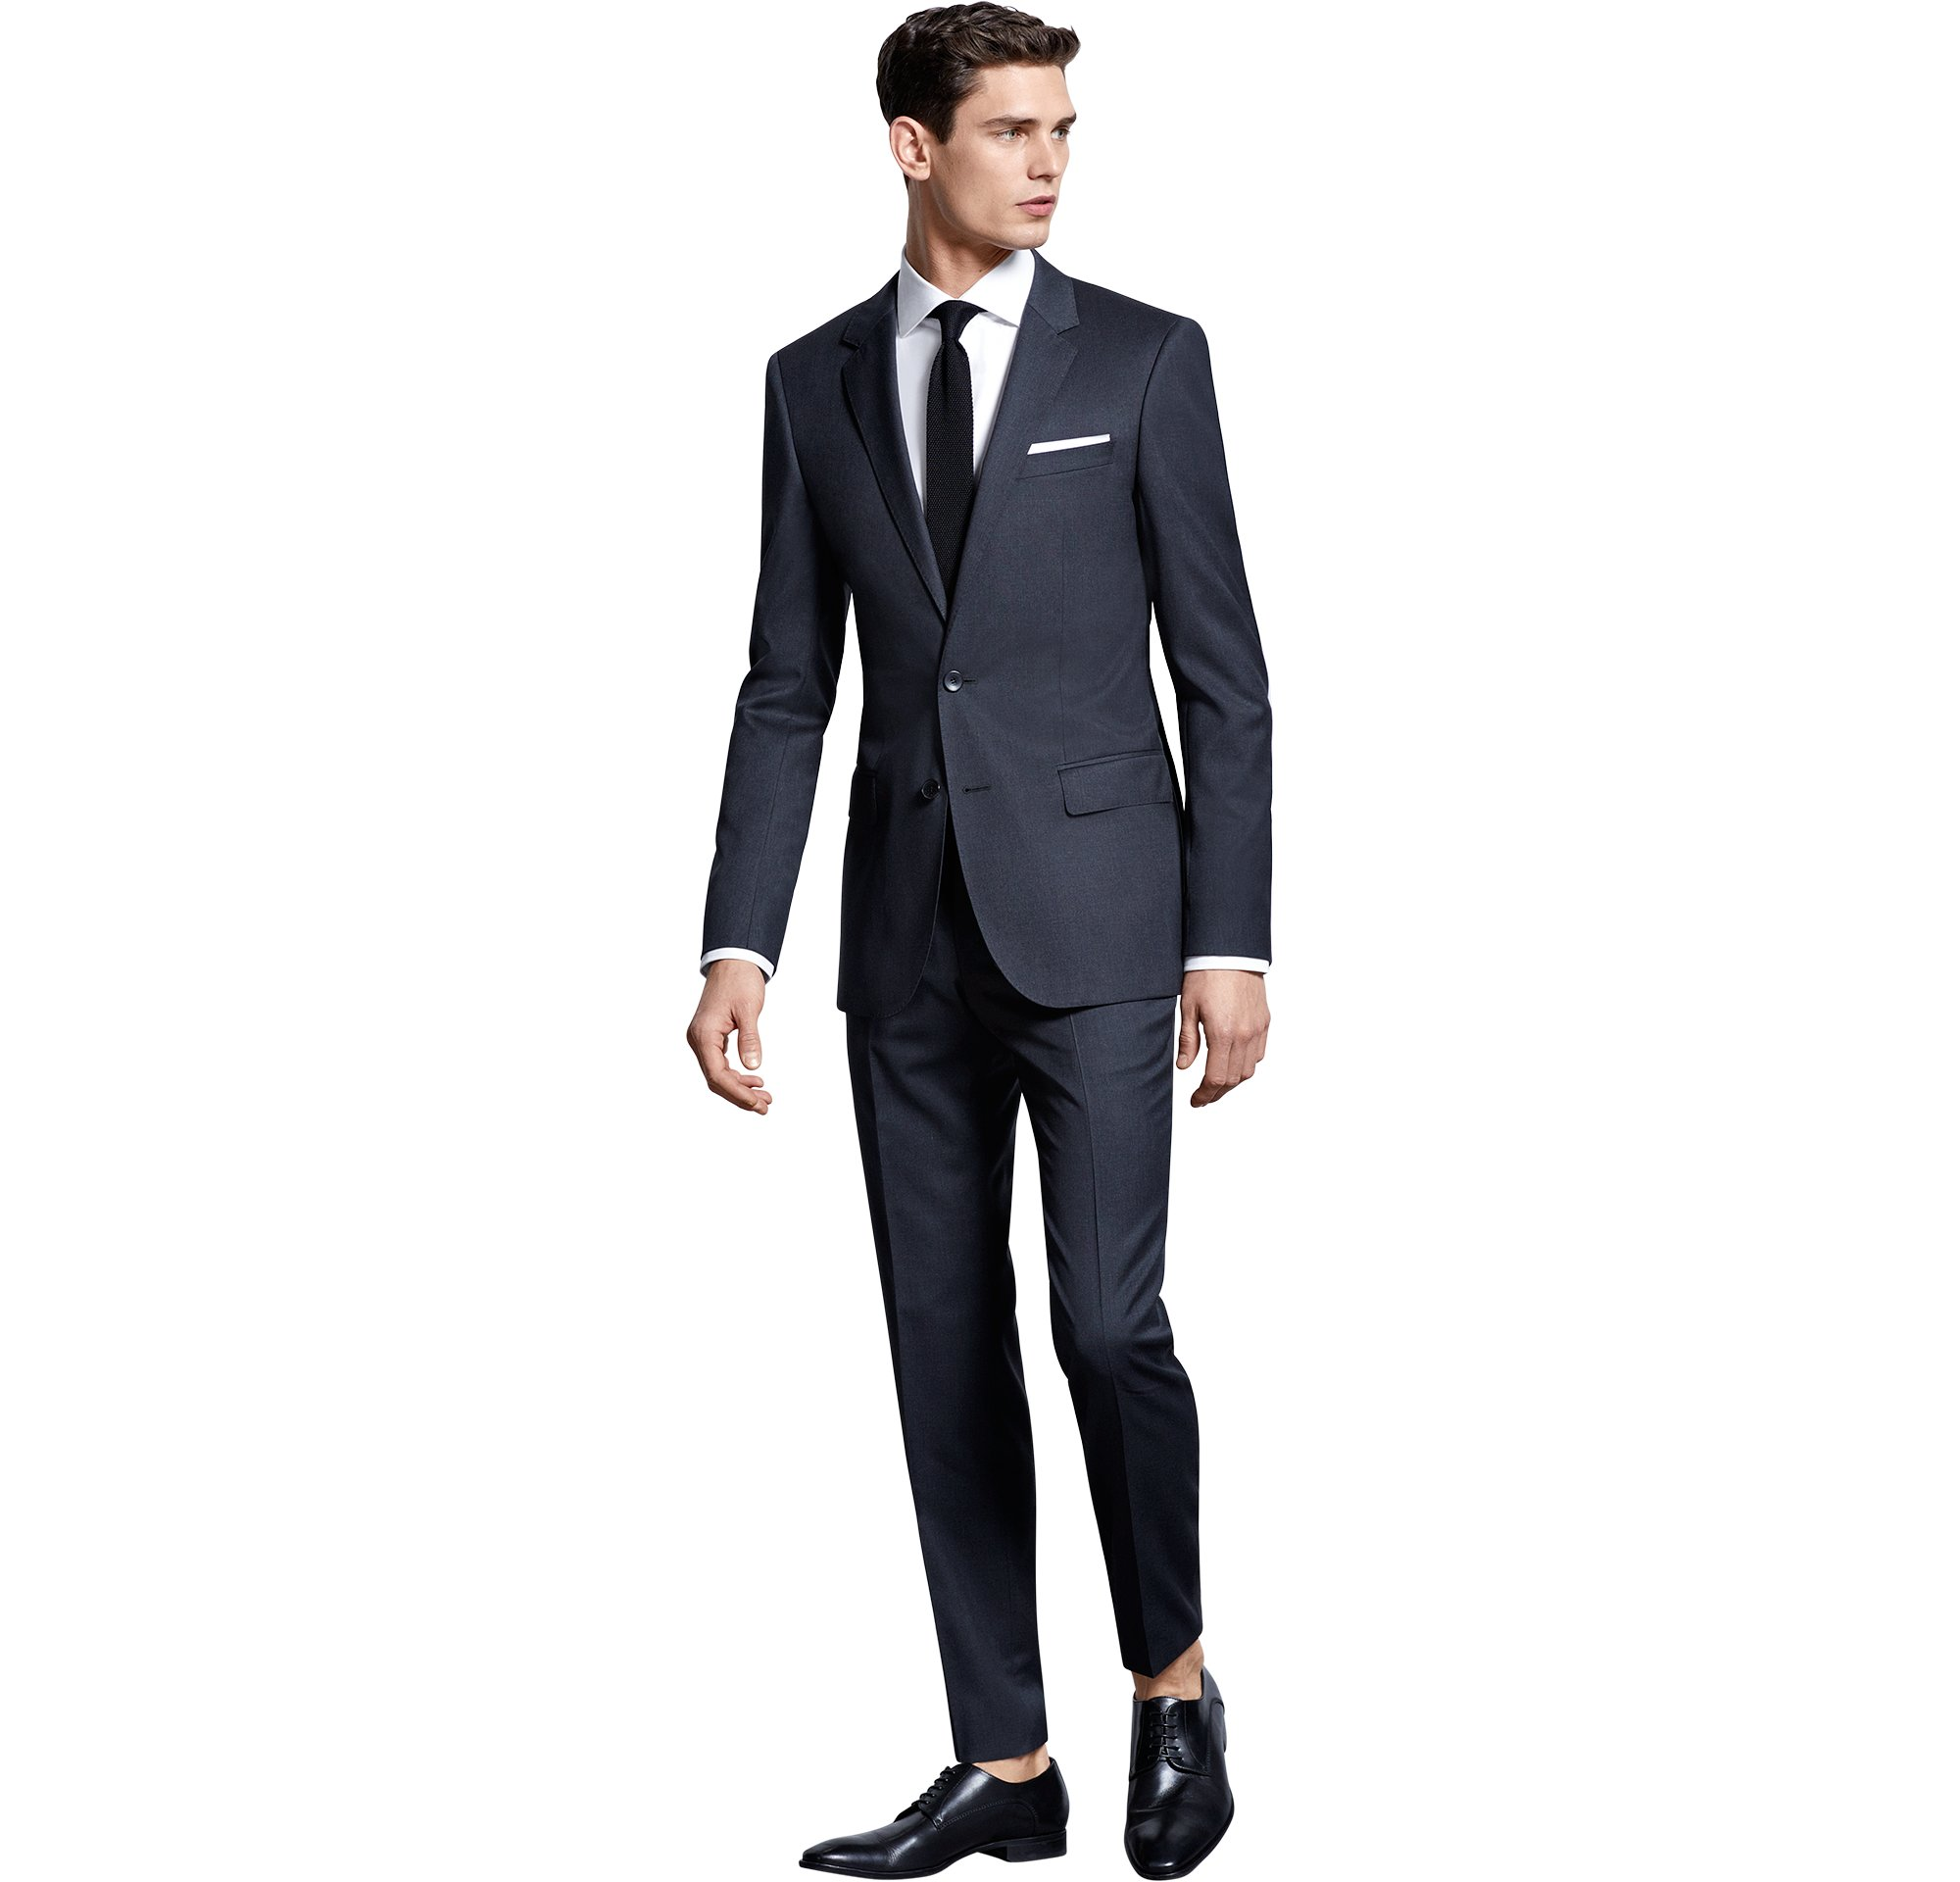 BOSS_Men_SR17SR_Suit499_Look_6,